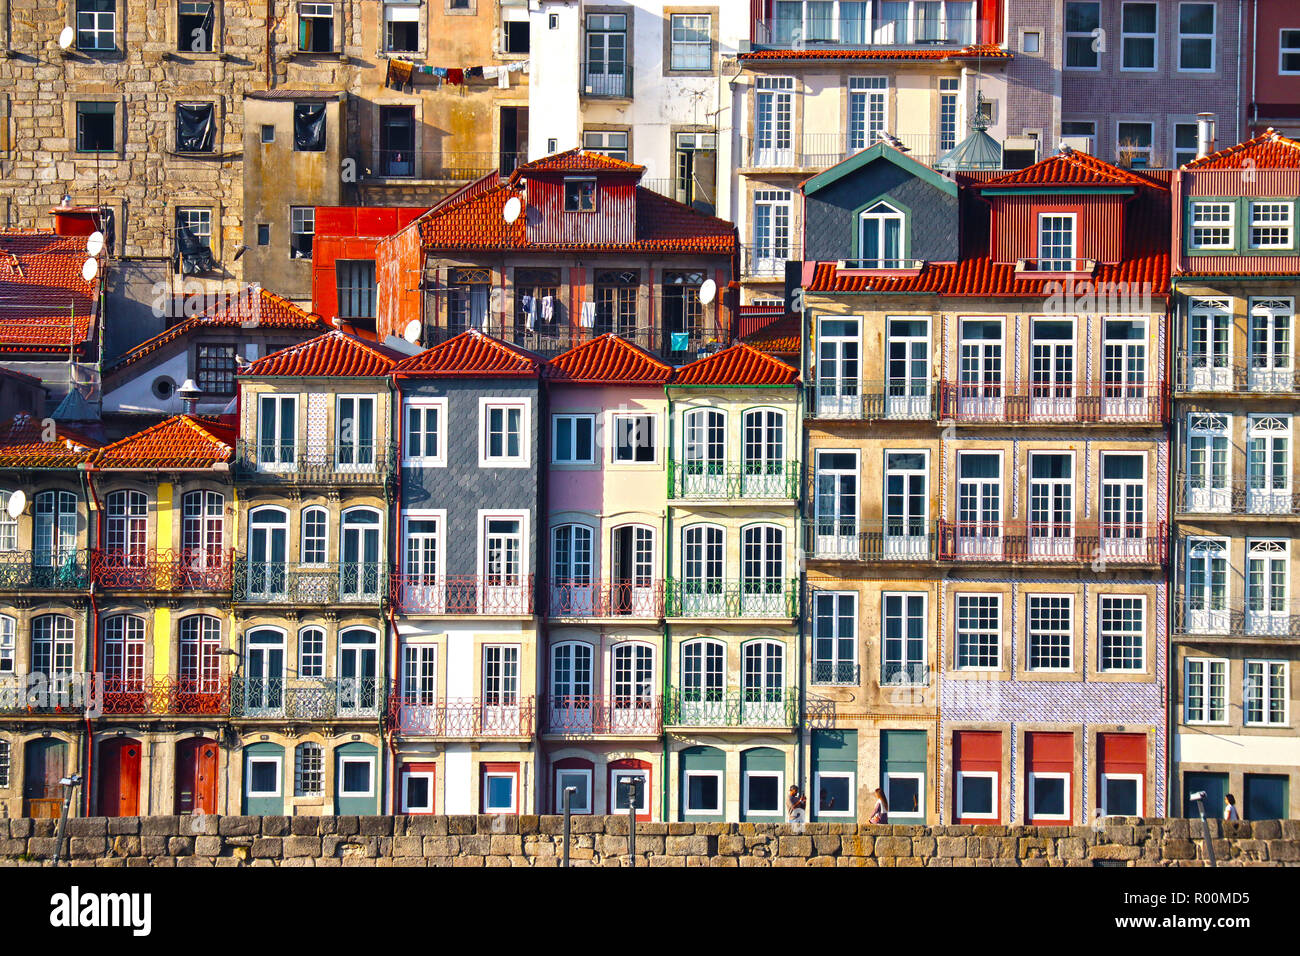 An abstract image depicting period houses complete with Azujelo tiles and ornate balconies, along the Douro River Front in Porto, Portugal - Stock Image